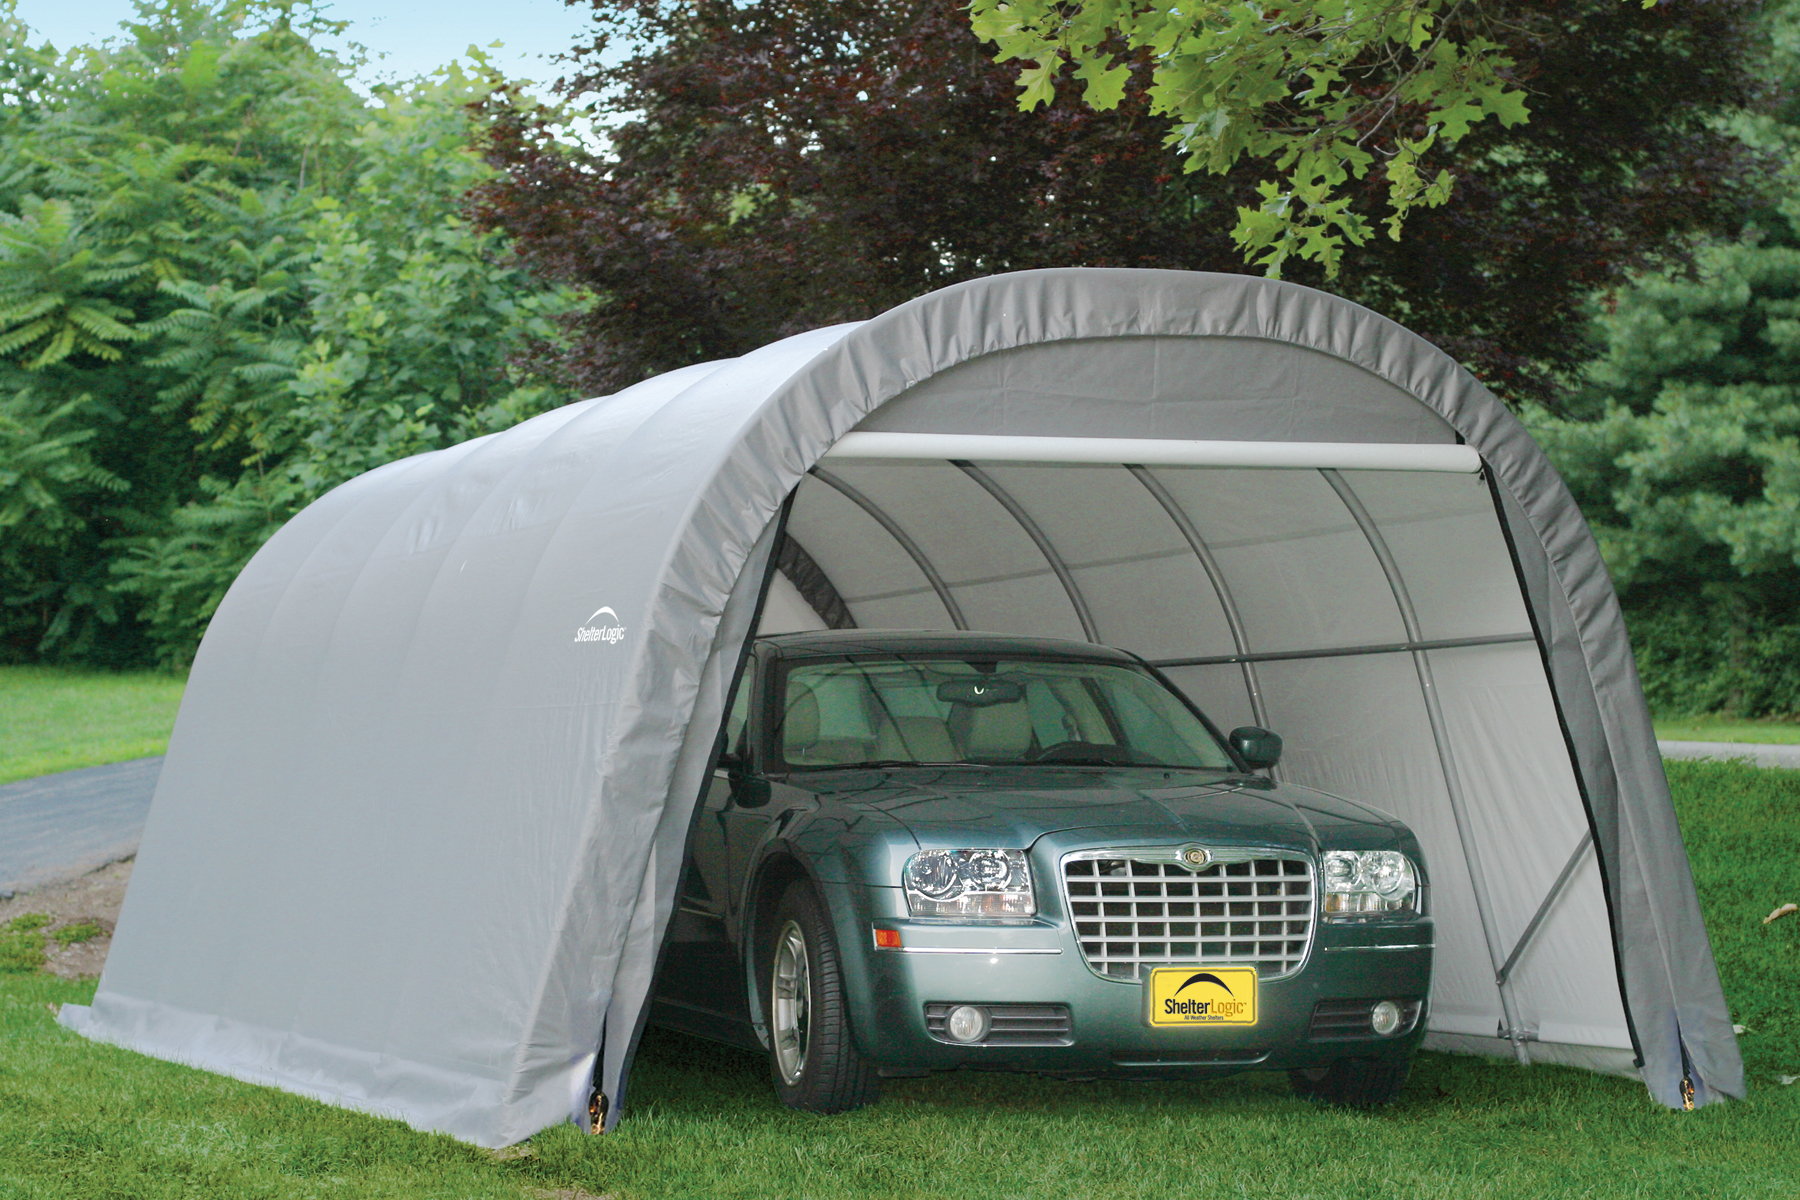 Vehicle Storage Shelter : Portable garage shelter carport temporary